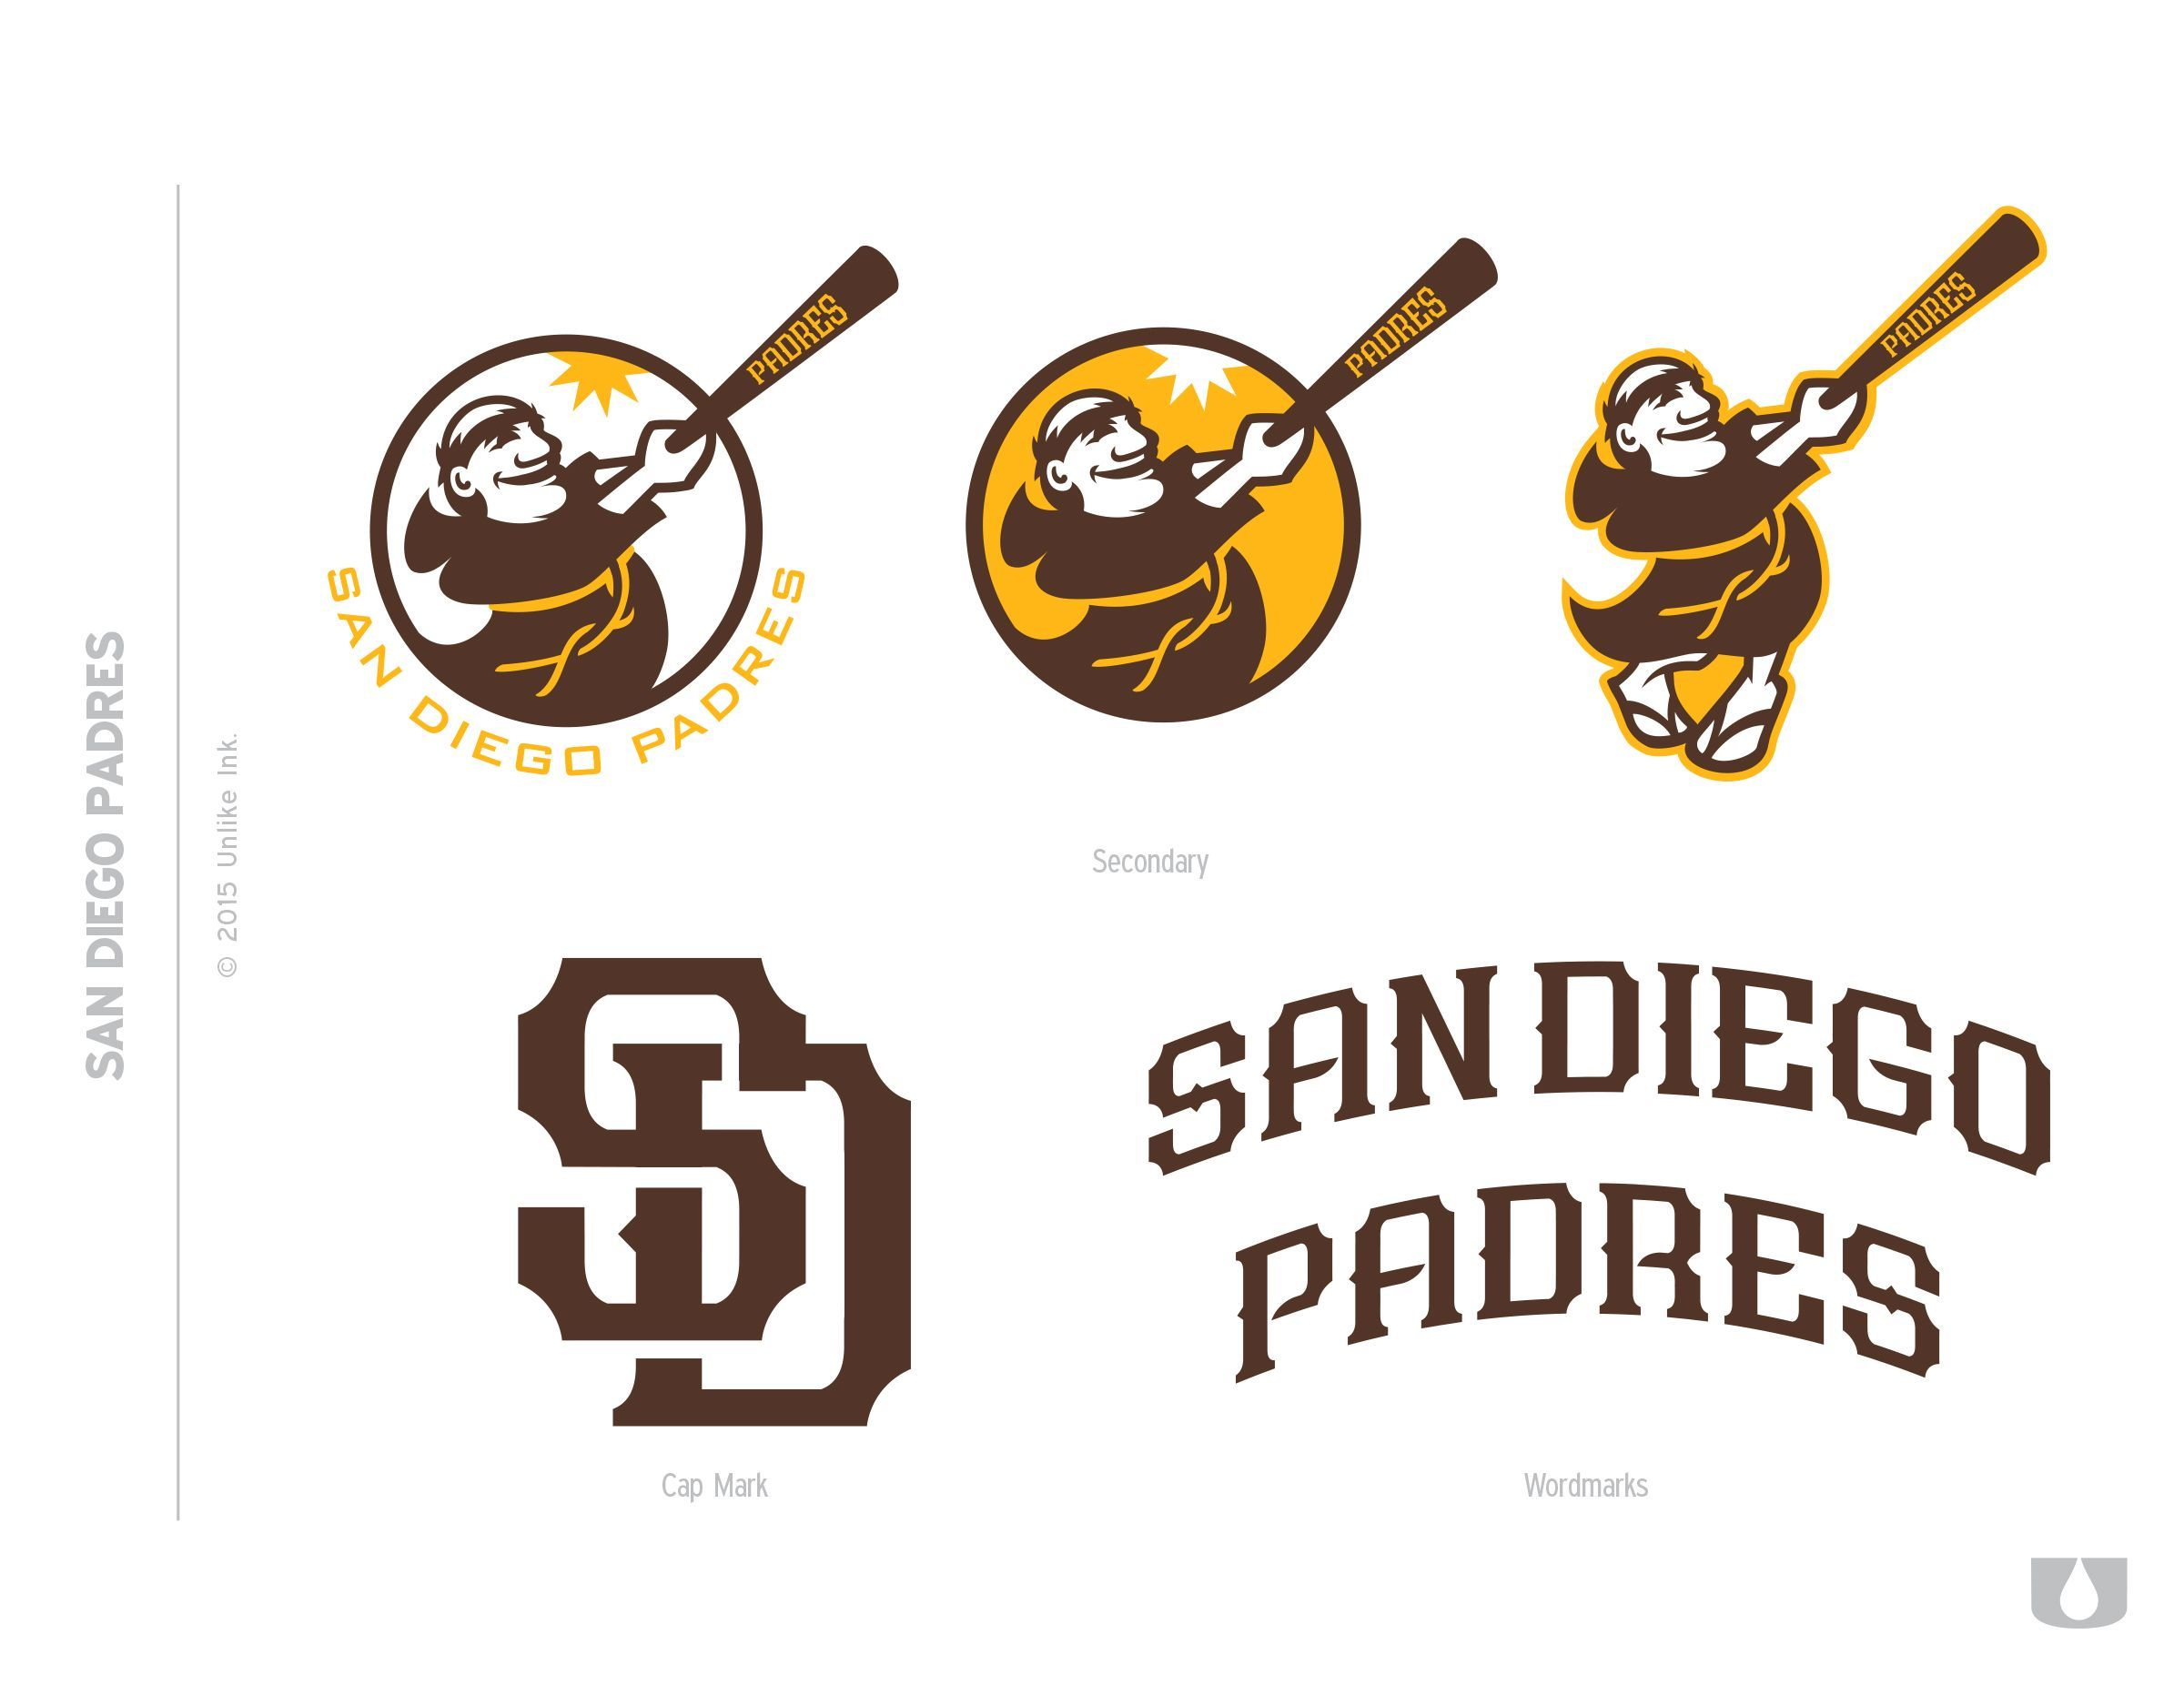 Padres Old Logo - Even more uniform mock-ups in old Padres colors - Gaslamp Ball ...